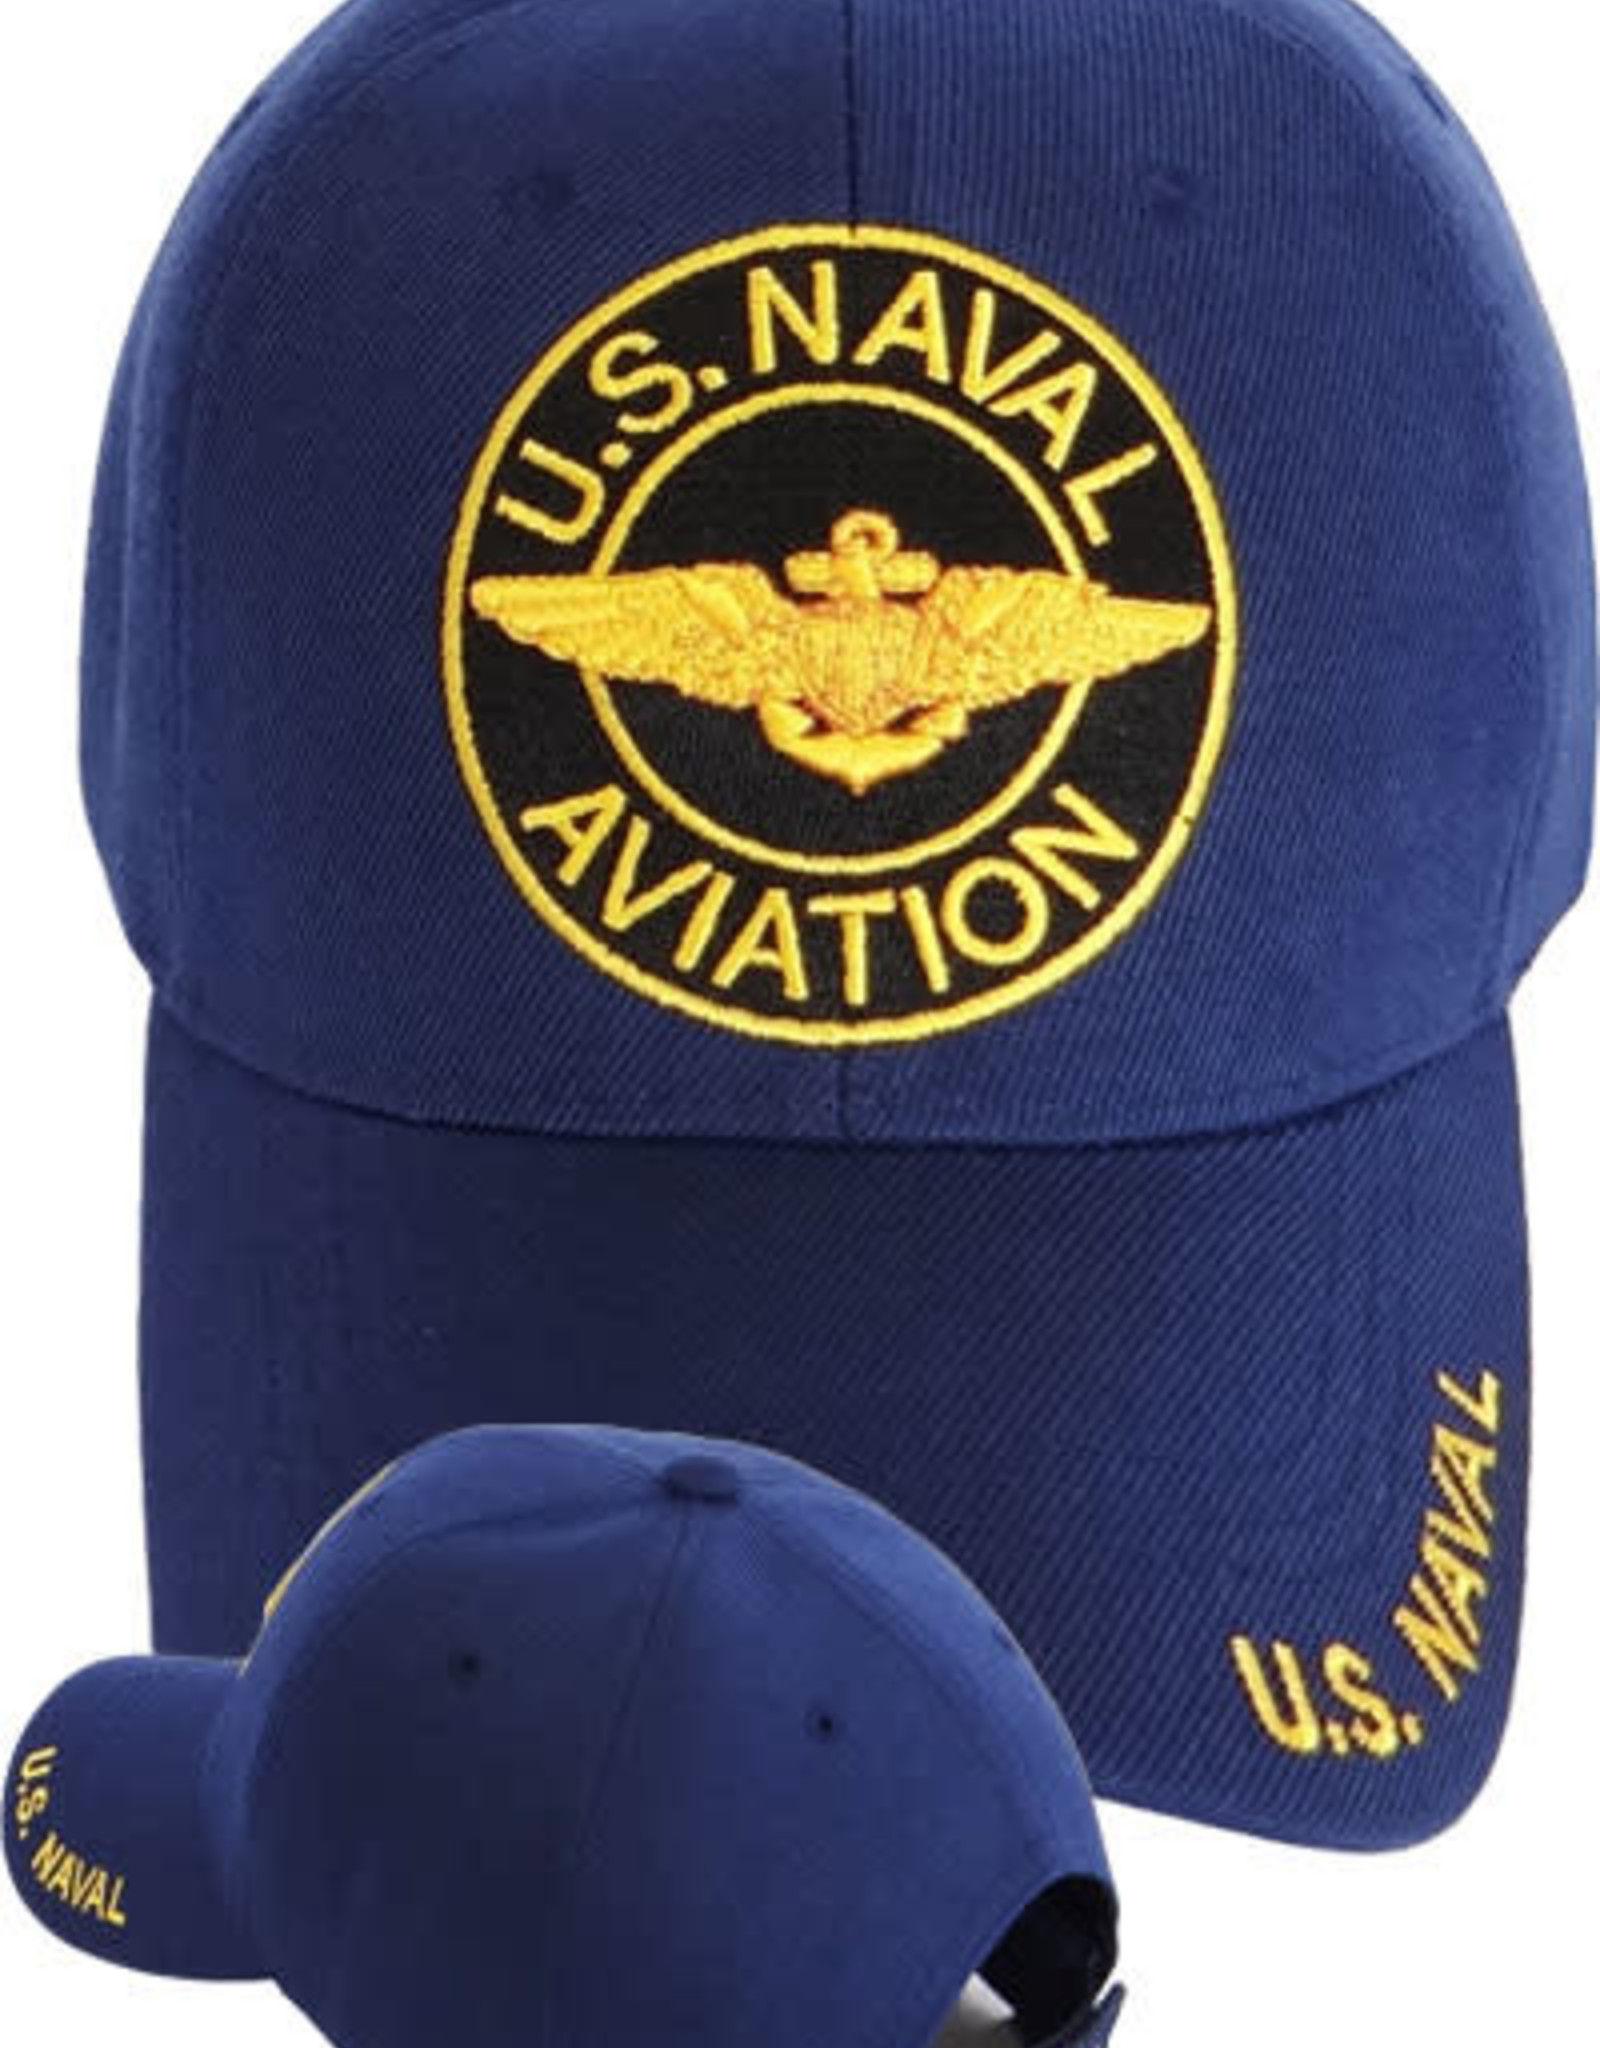 MidMil Naval Aviation Hat with Circle Dark Blue